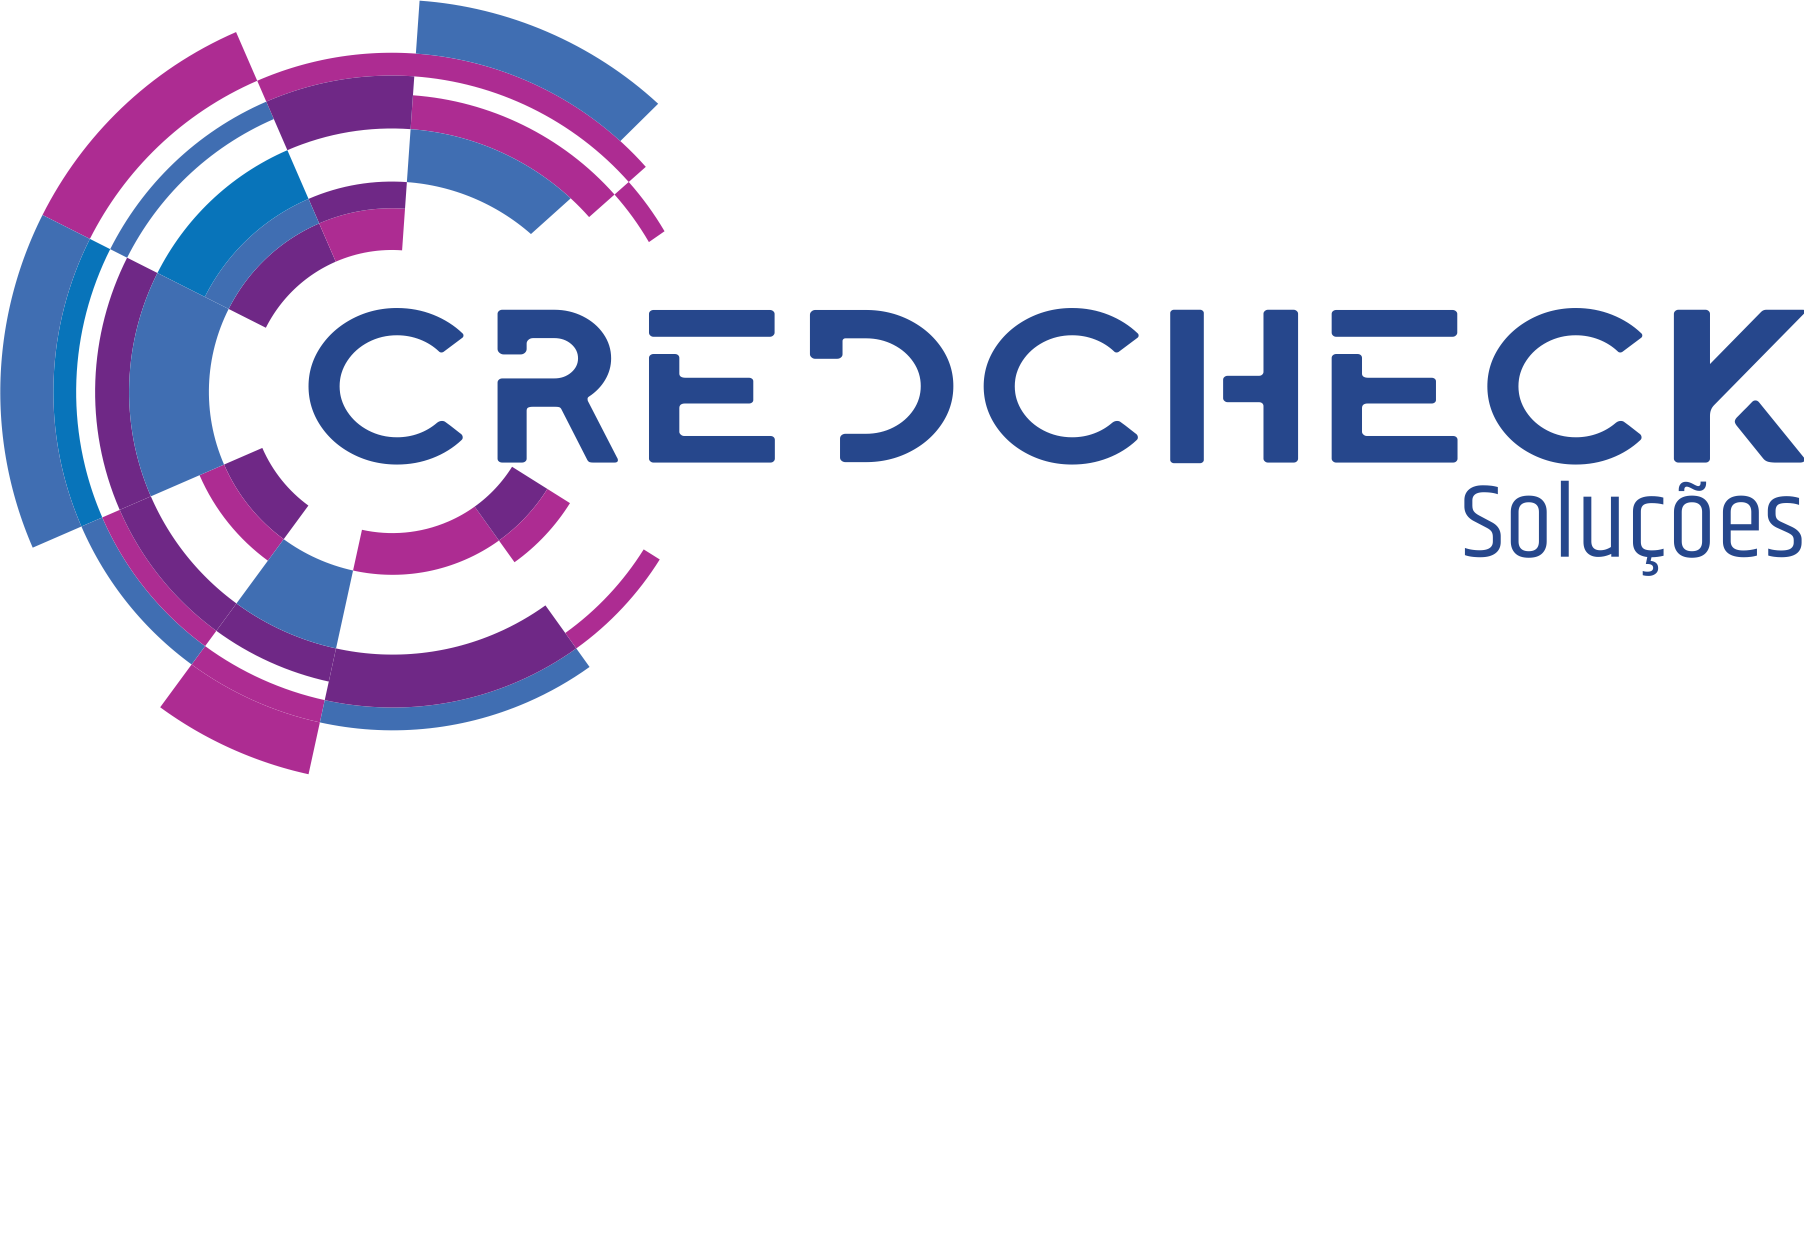 Logotipo do parceiro Cred Check